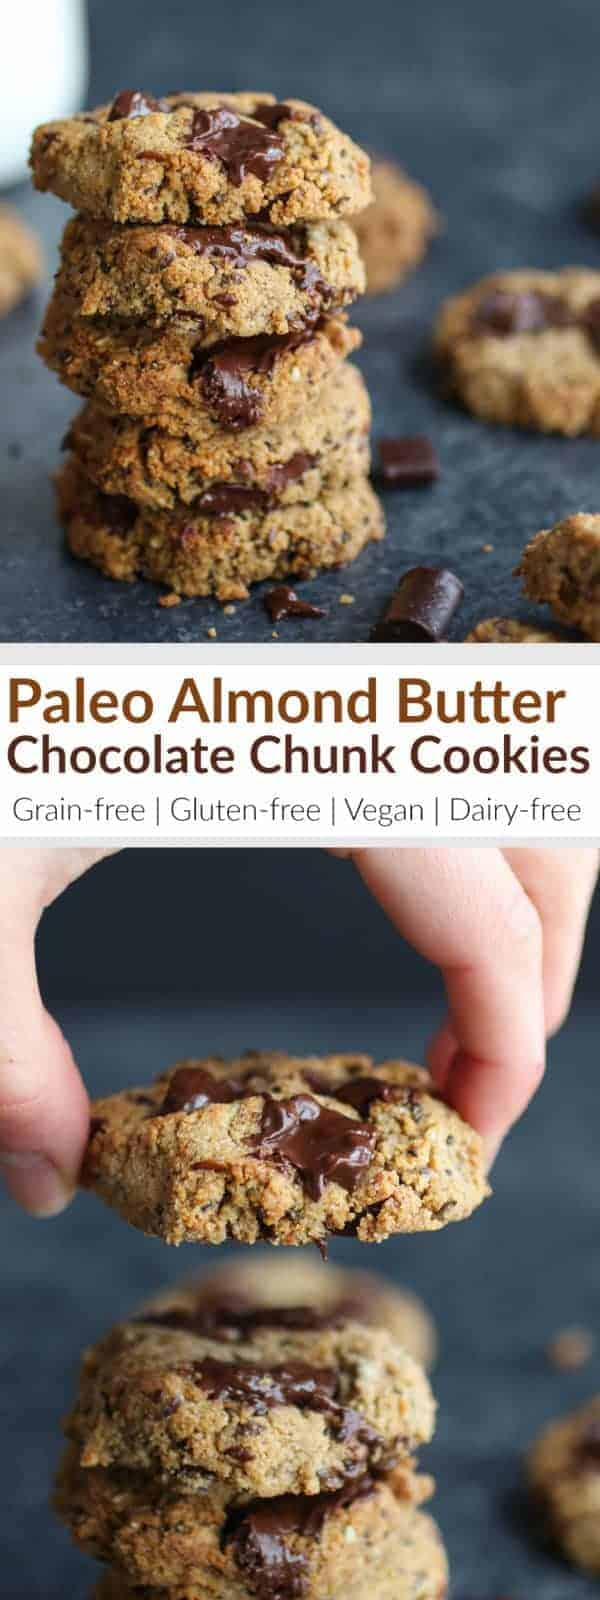 When you're craving a little somethin' sweet, make these one-bowl, Paleo Almond Butter Chocolate Chunk Cookies. The perfectly soft chocolate chunk cookie that's grain-free, gluten-free, dairy-free, egg-free, paleo and vegan-friendly and out-of-this-world delicious. | therealfoodrds.com